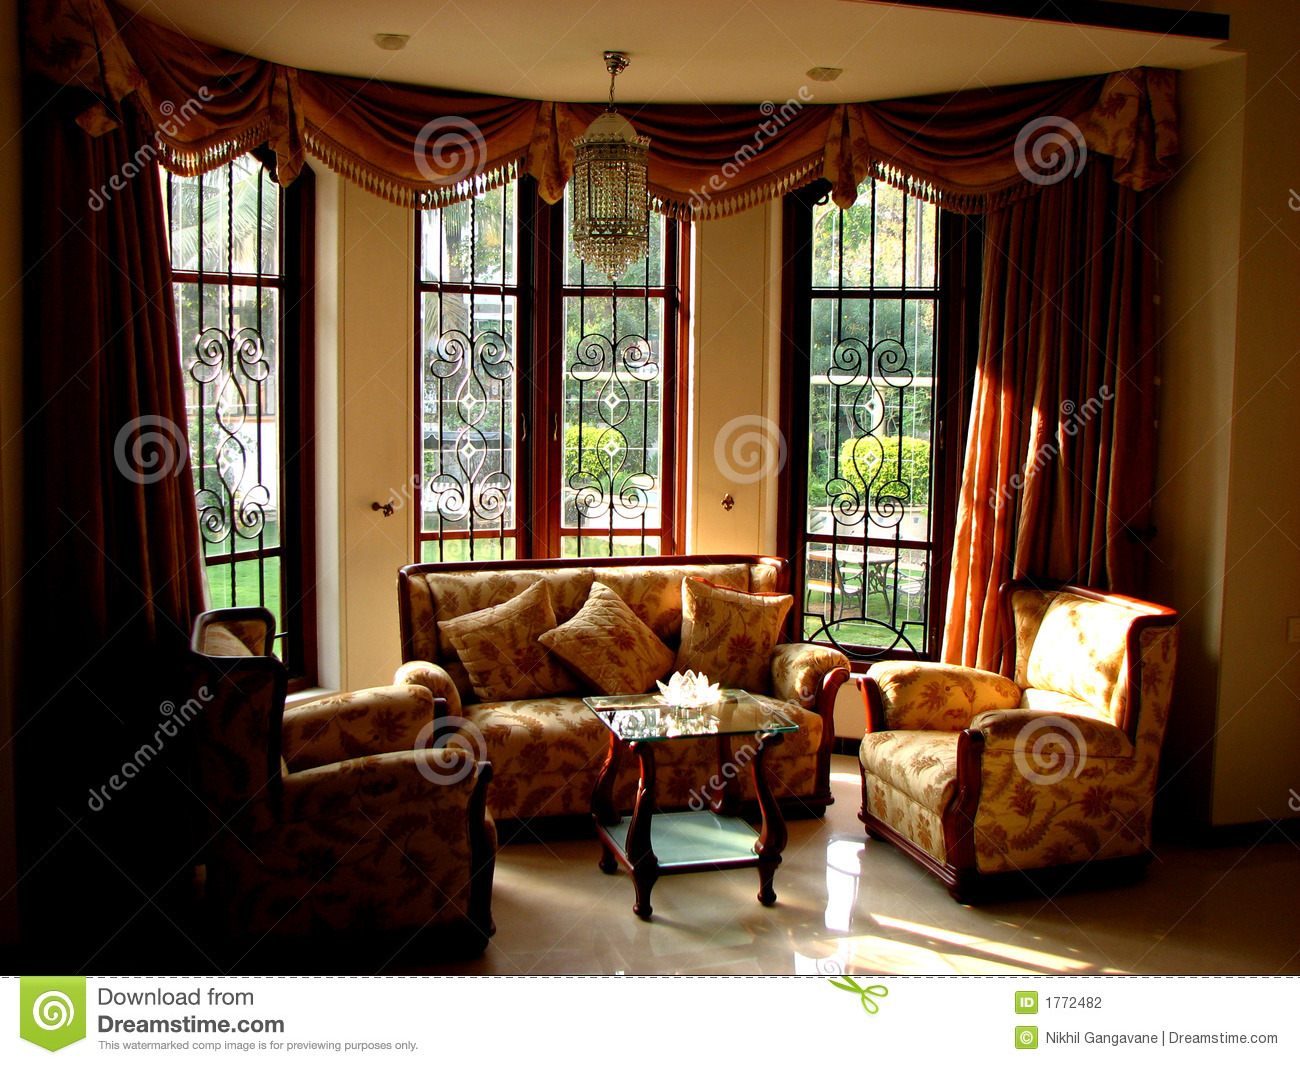 Beautiful Interiors Stock Photography  Image 1772482